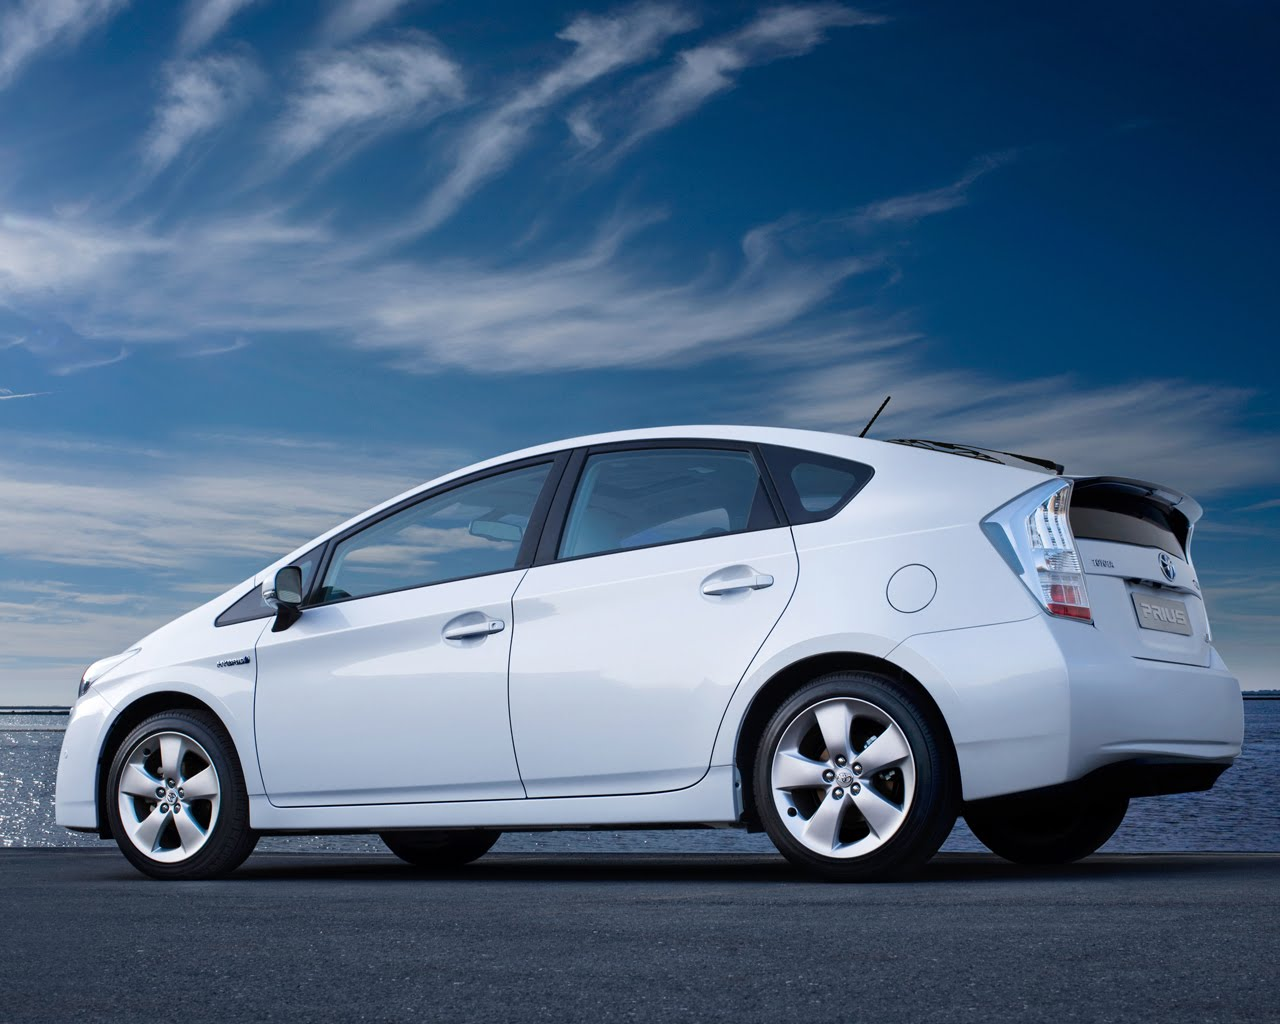 Top 5 Hybrid Cars In 2012